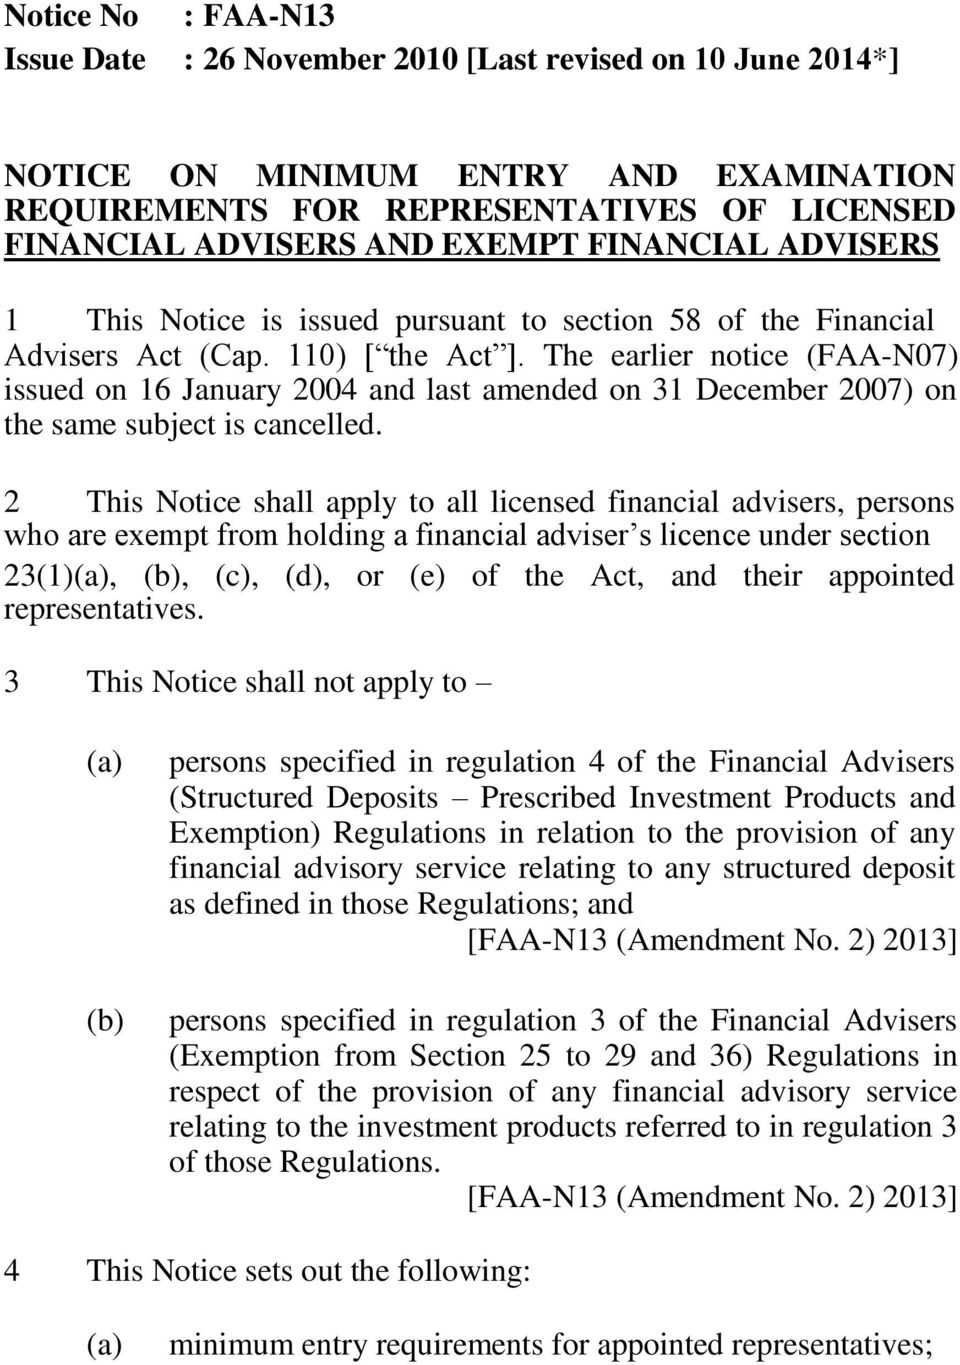 The earlier notice (FAA-N07) issued on 16 January 2004 and last amended on 31 December 2007) on the same subject is cancelled.